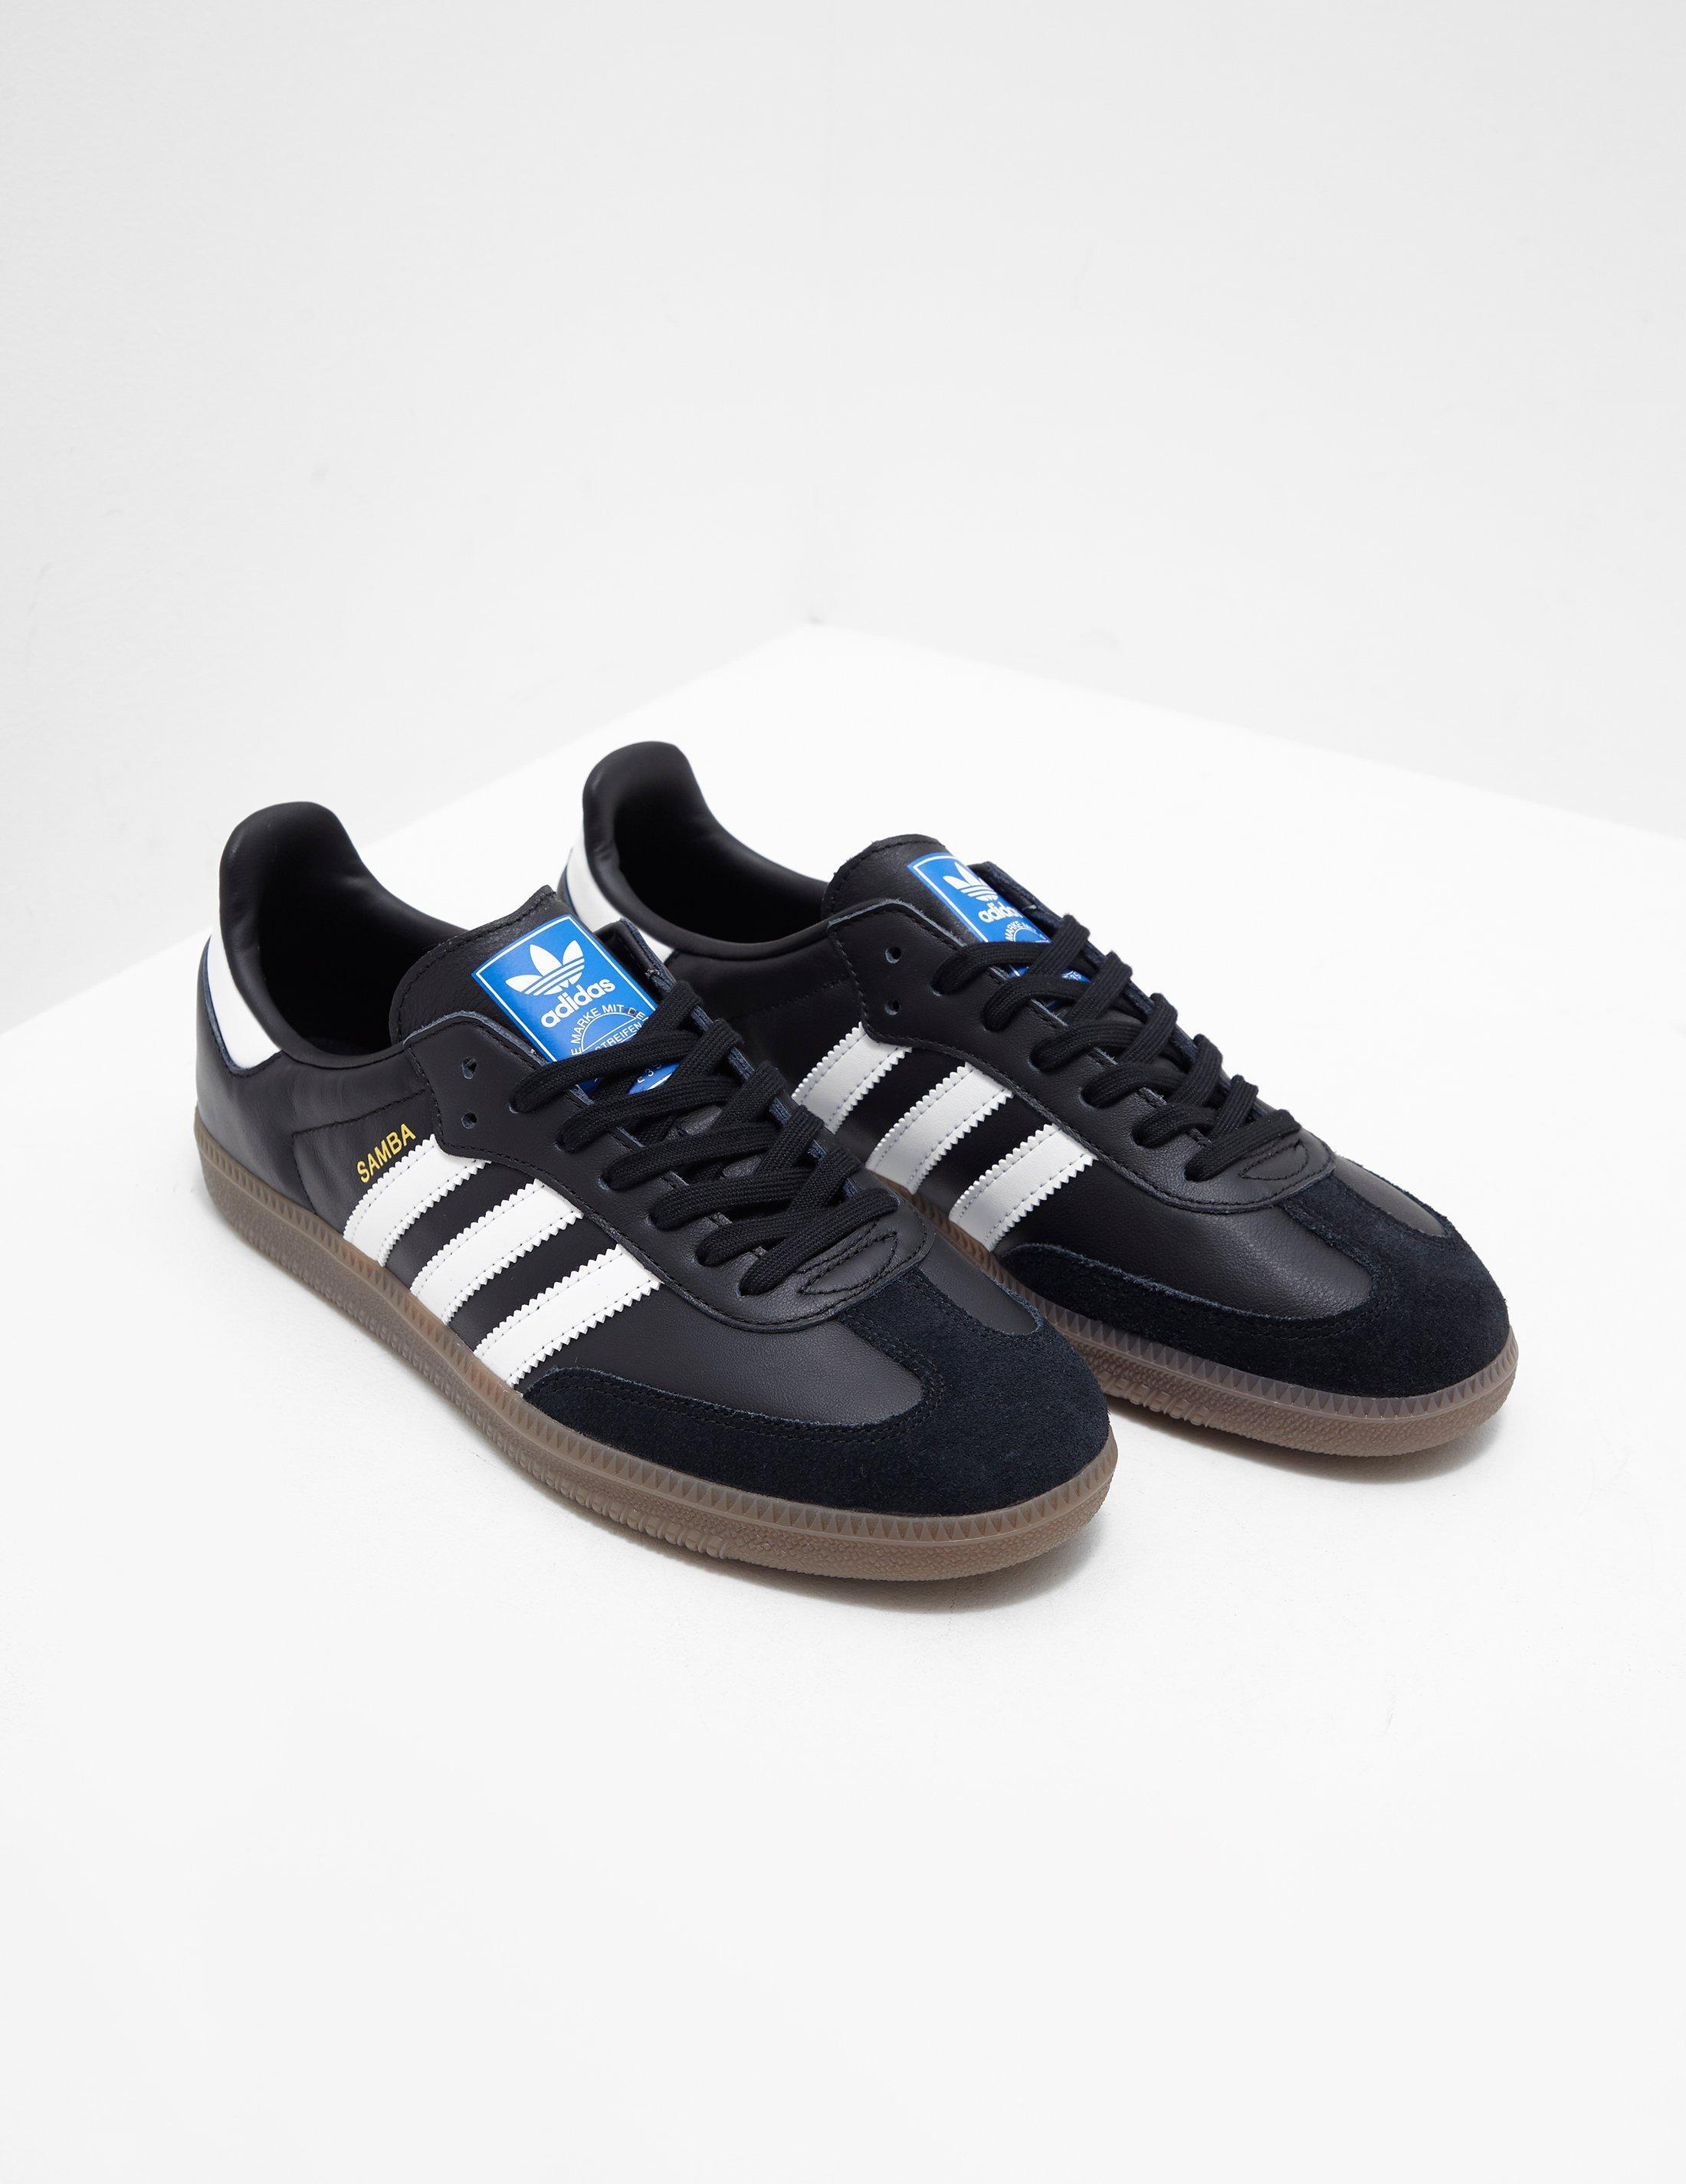 Lyst - Adidas Originals Mens Samba Black in Black for Men 0cd6969d7